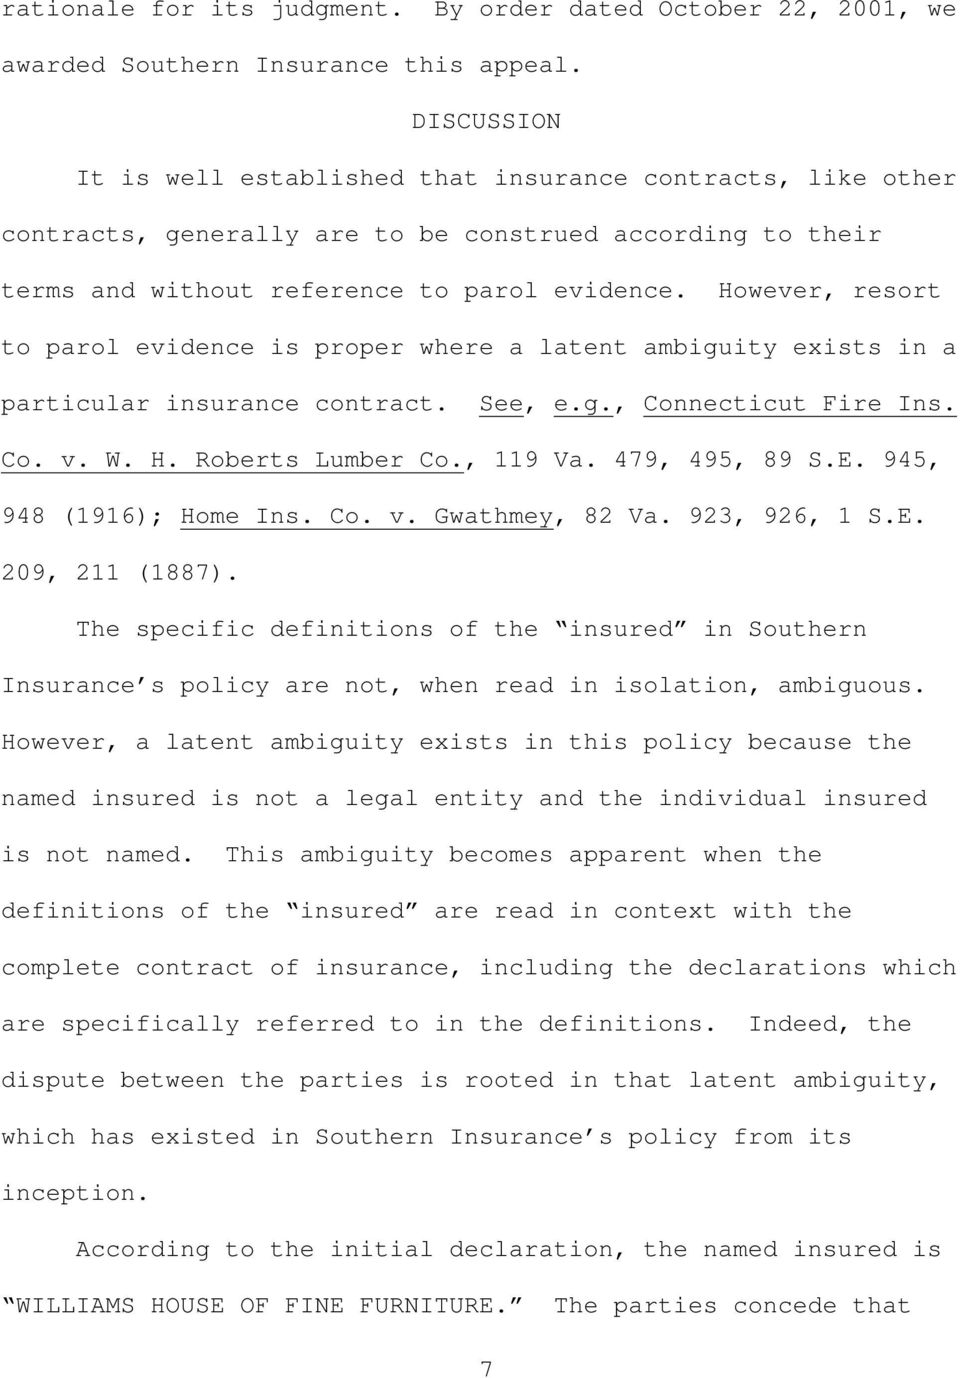 However, resort to parol evidence is proper where a latent ambiguity exists in a particular insurance contract. See, e.g., Connecticut Fire Ins. Co. v. W. H. Roberts Lumber Co., 119 Va.